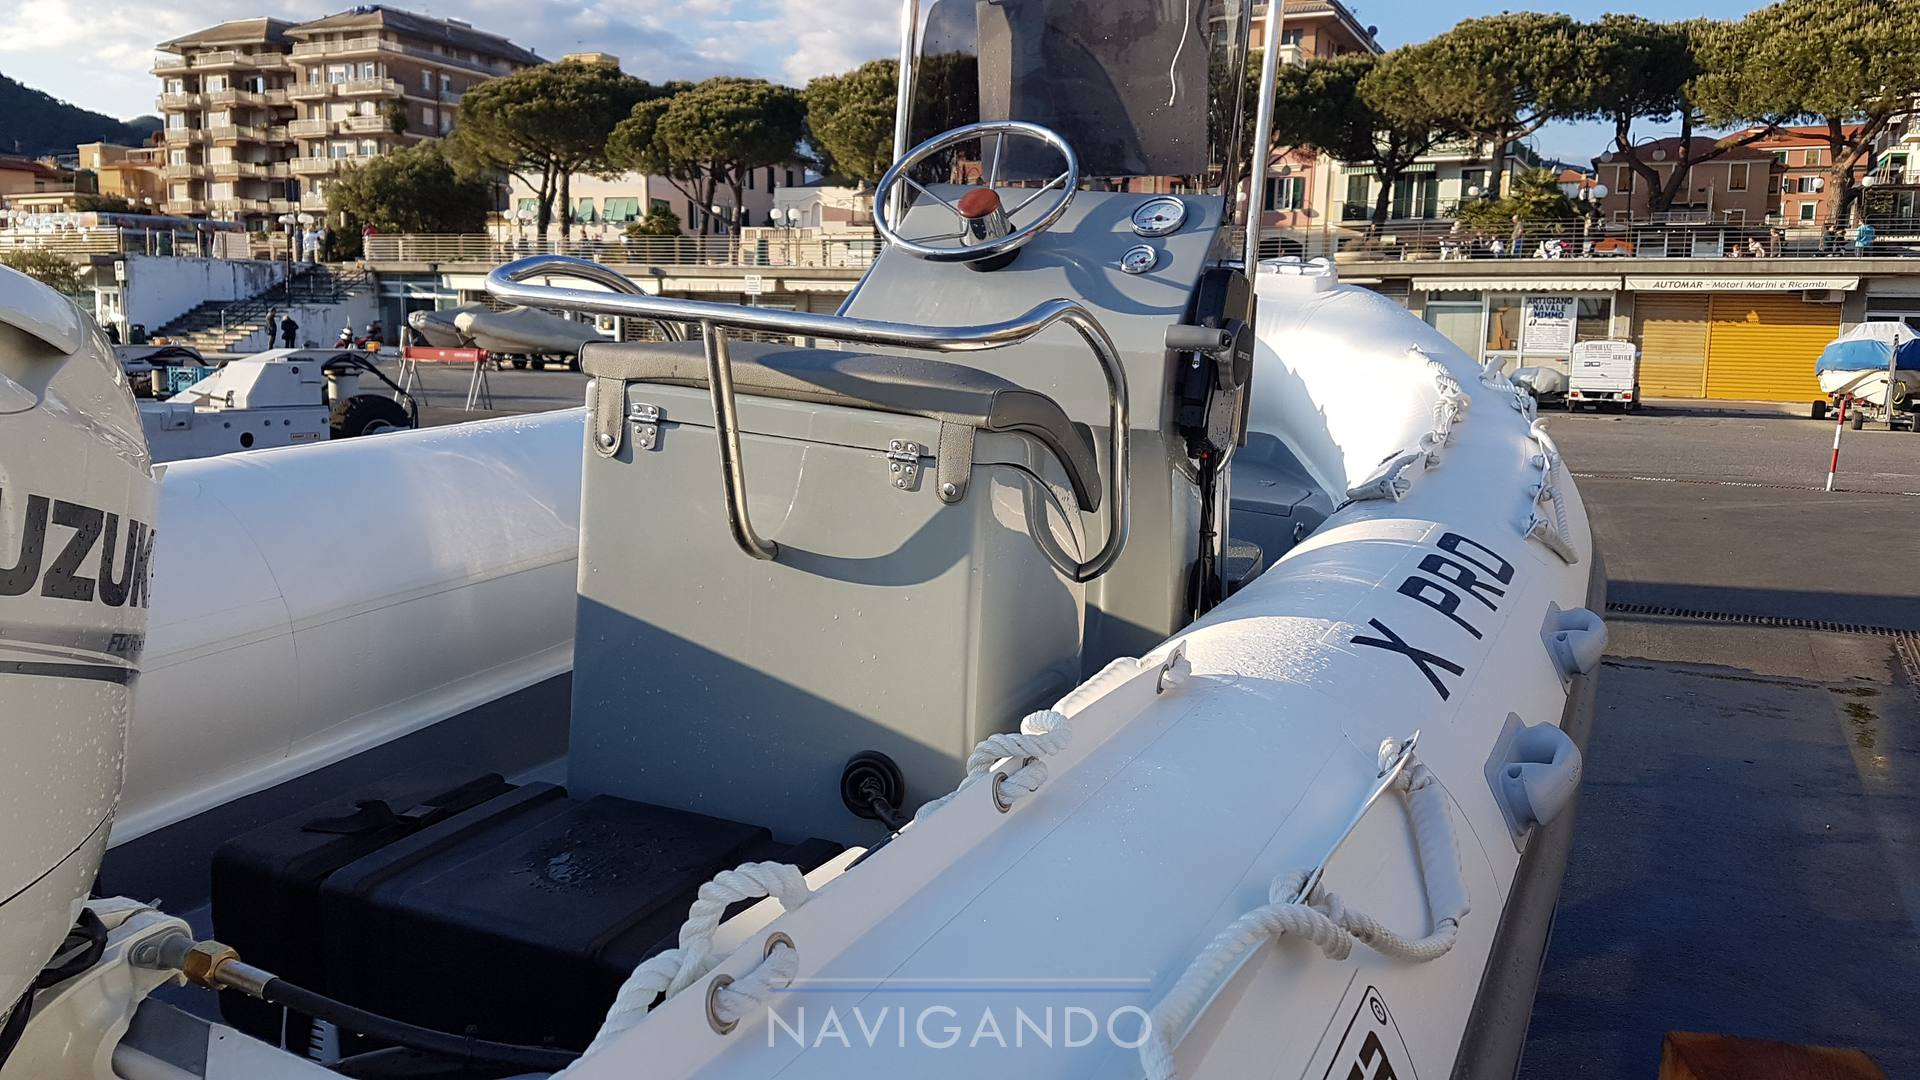 3d tender gommone X pro 535 Gommone used boats for sale